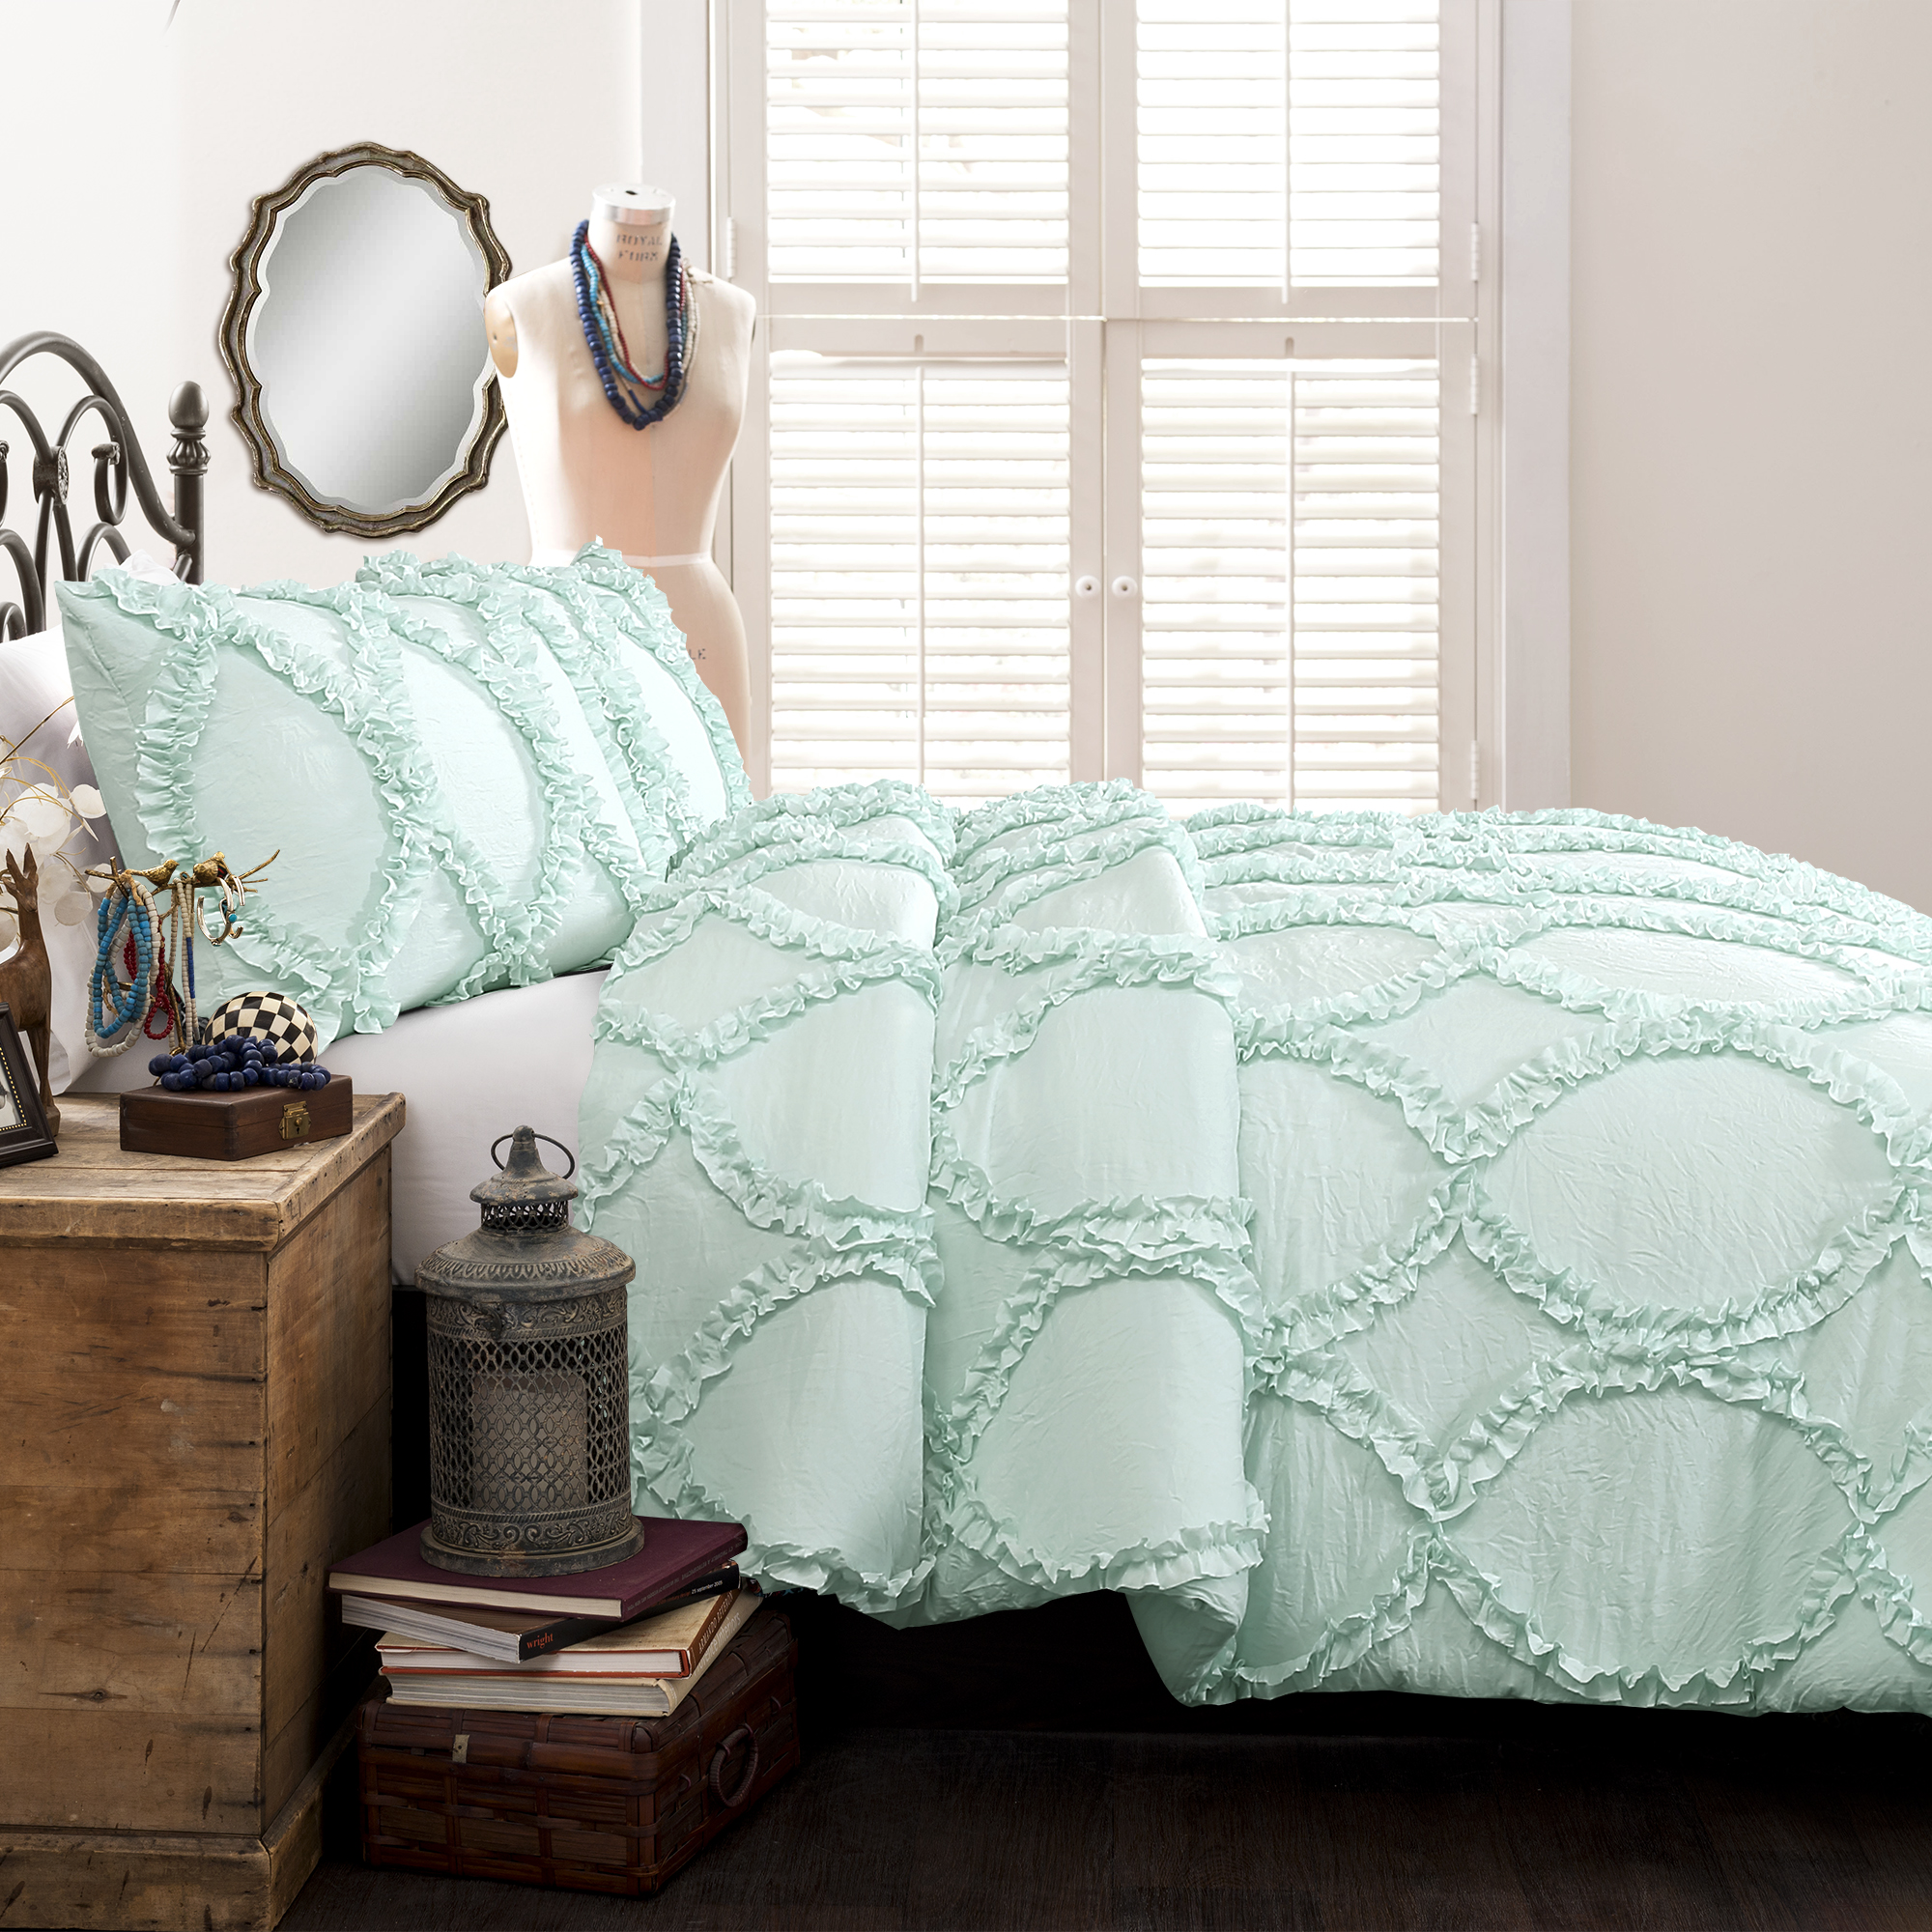 Avon Comforter Light Aqua 2 Pc Set Twin by Lush D��Cor